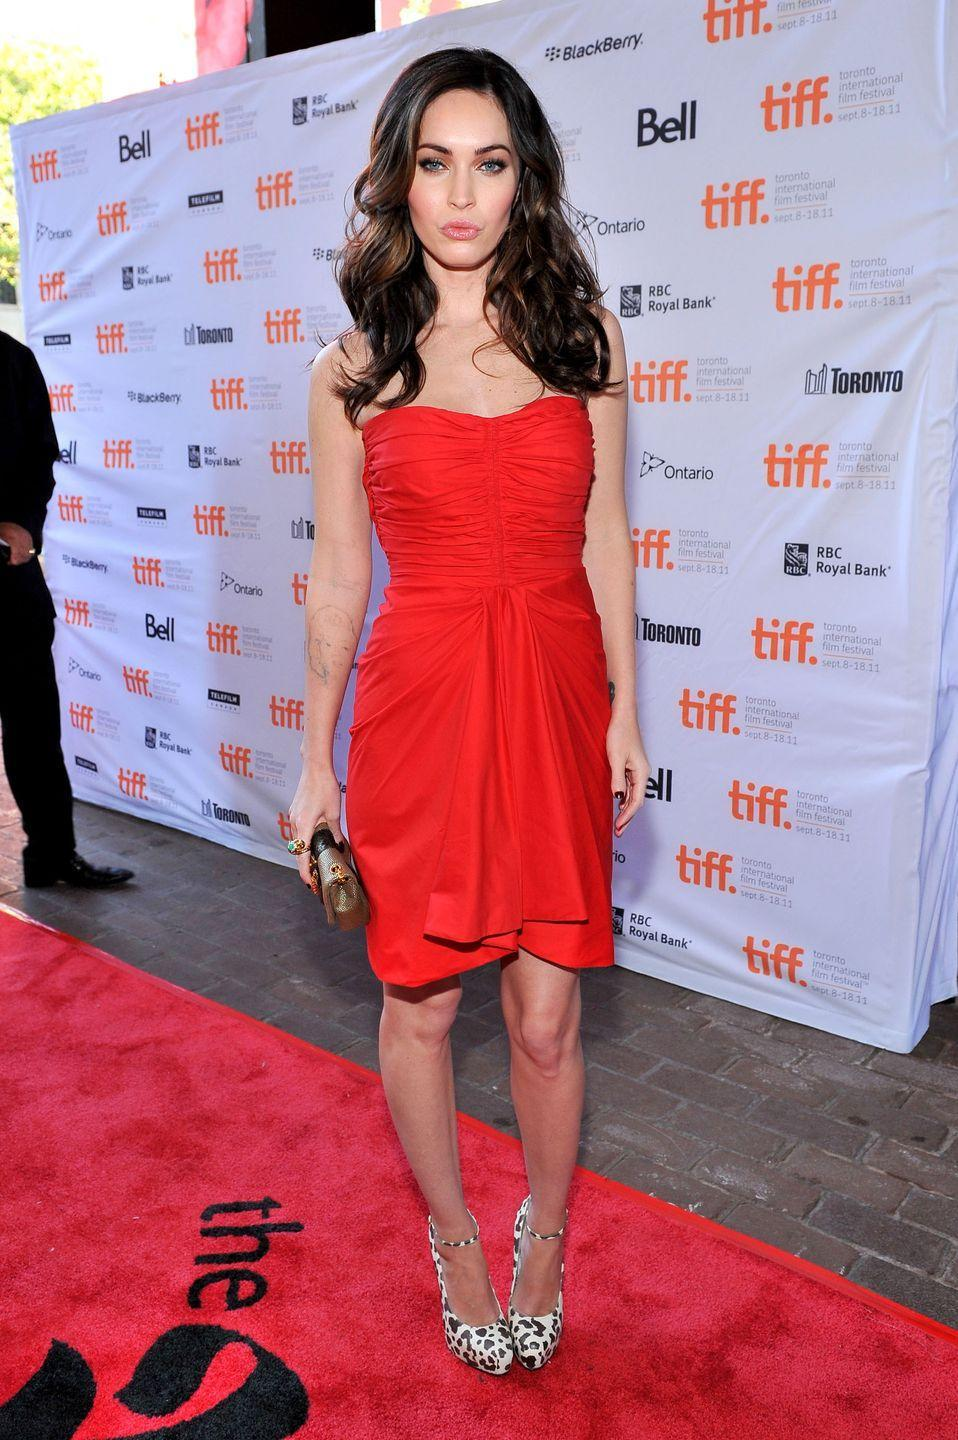 <p>For the Toronto, Canada premiere the star wore a red Thakoon dress, Brian Atwood zenith heels, a David Webb ring and carried a Christian Louboutin clutch bag. </p>